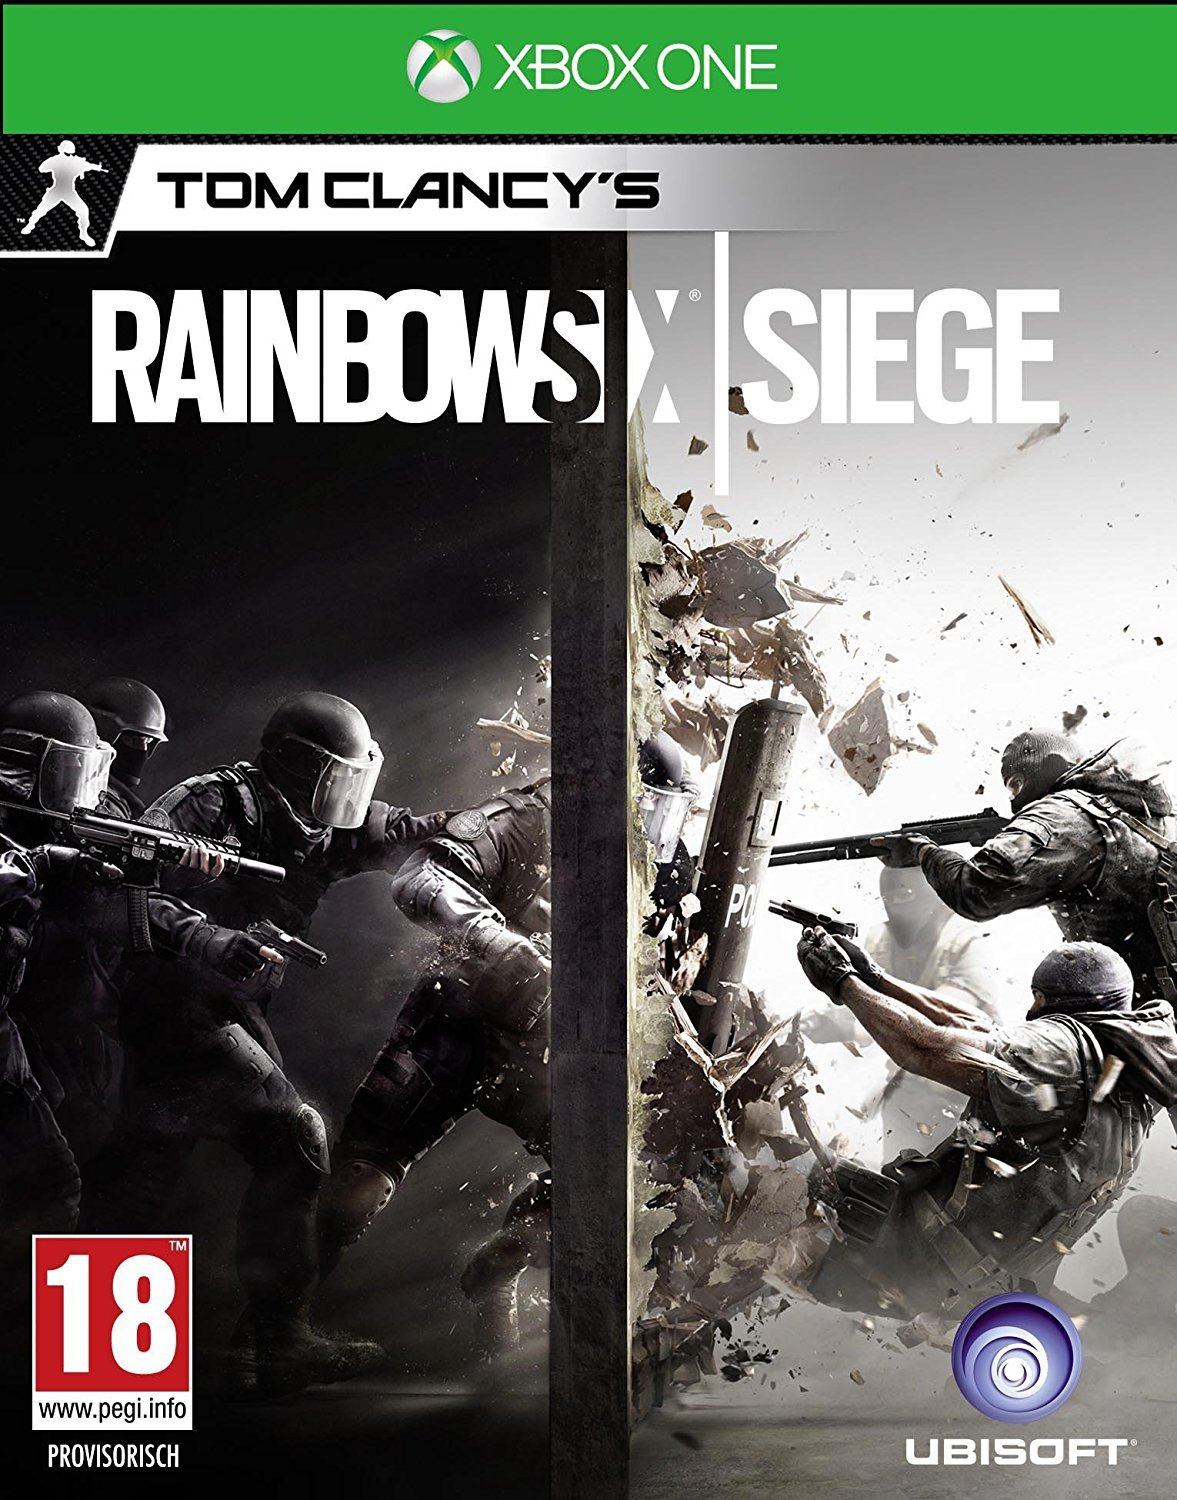 Tom Clancy's Rainbow 6 Siege (ex bundle stock) for Xbox One image